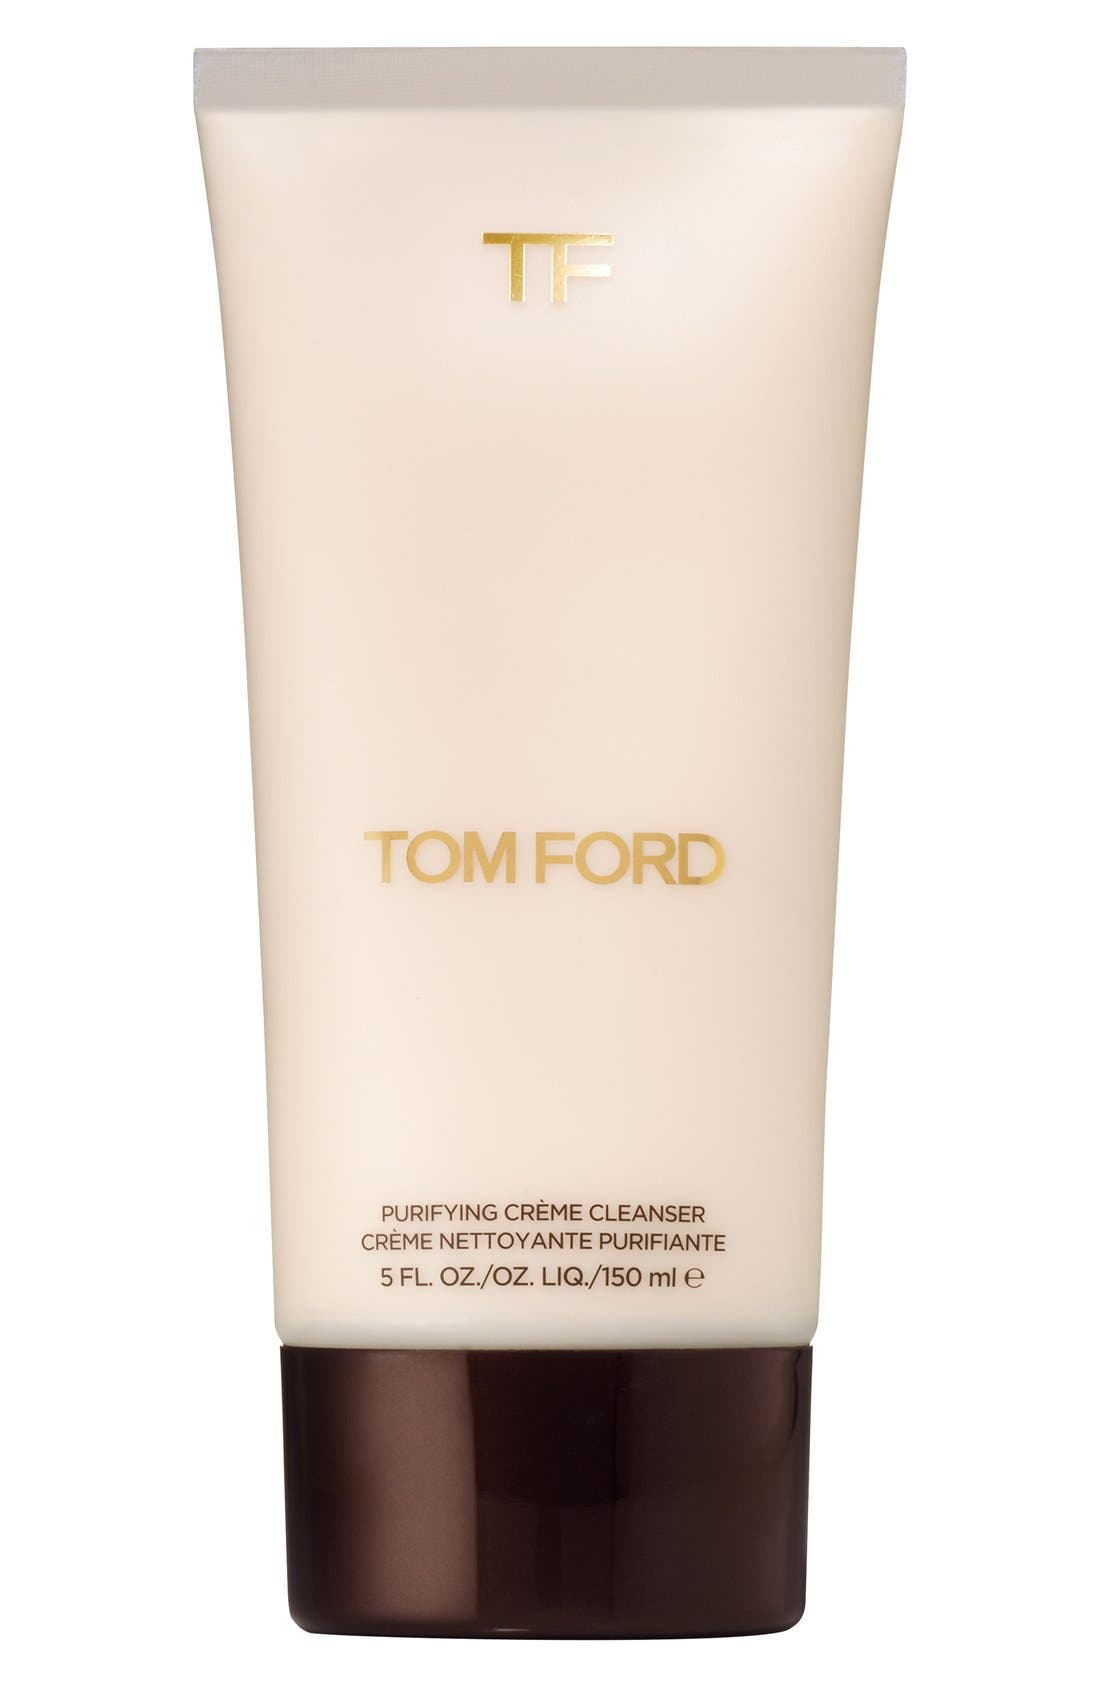 Tom Ford Purifying Cream Cleanser